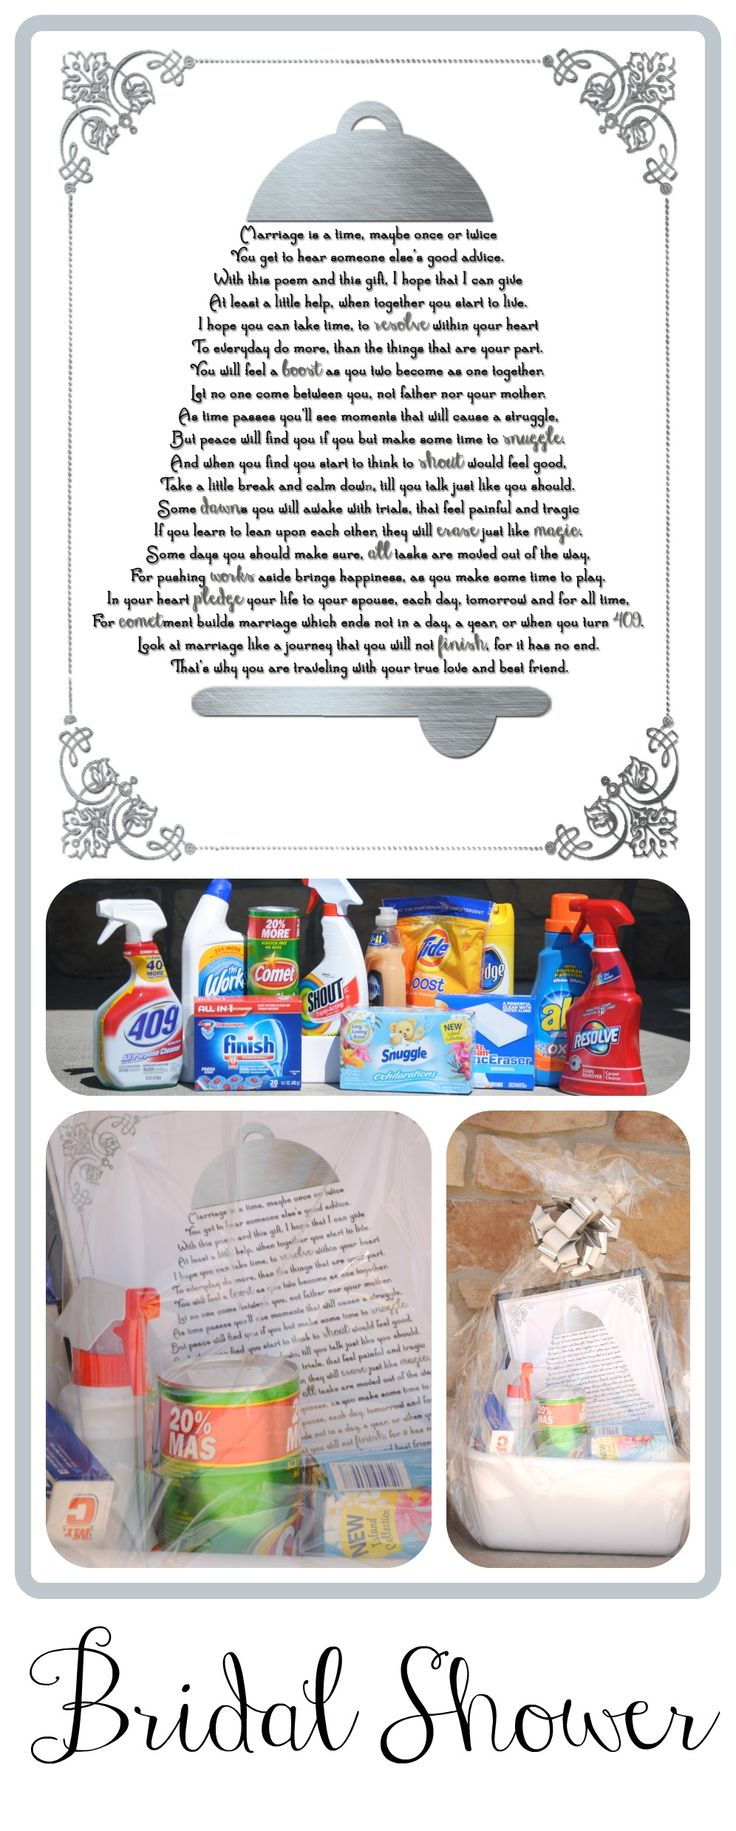 Wedding Shower Cleaning Gift Basket With Printable Poem